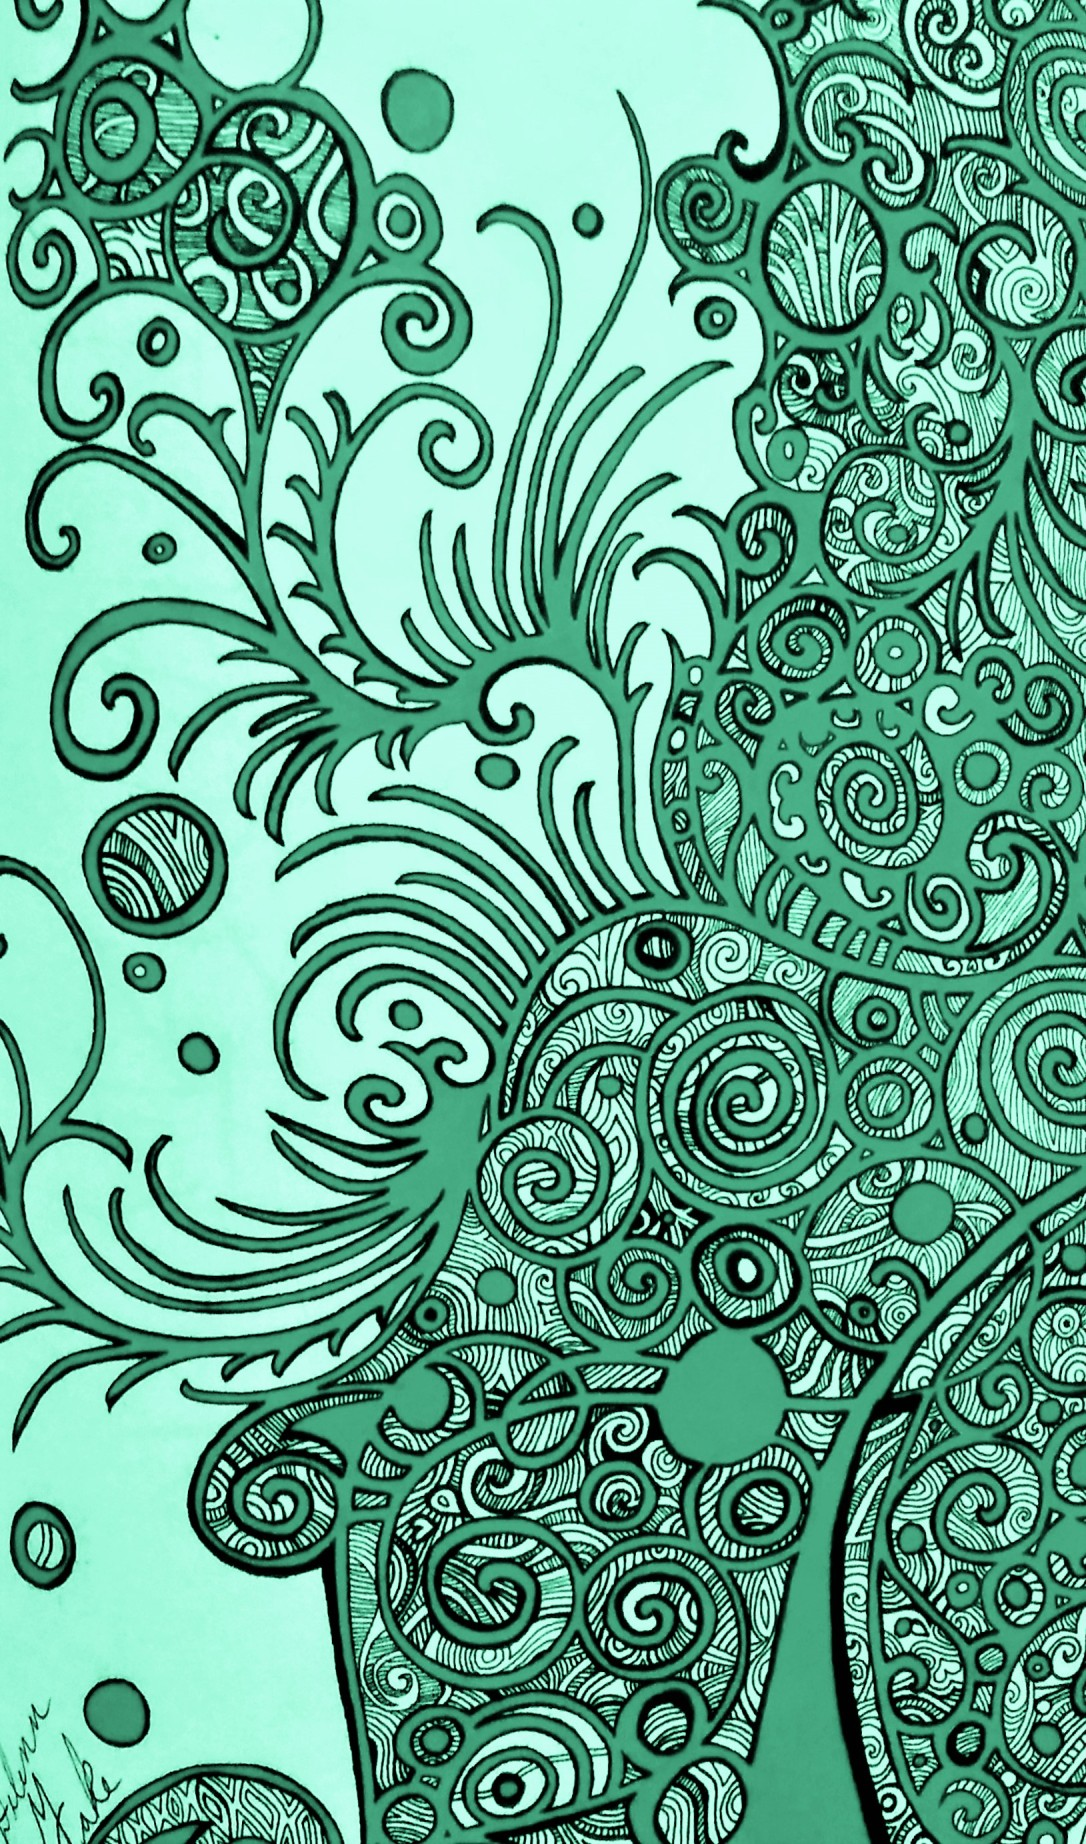 design edited green